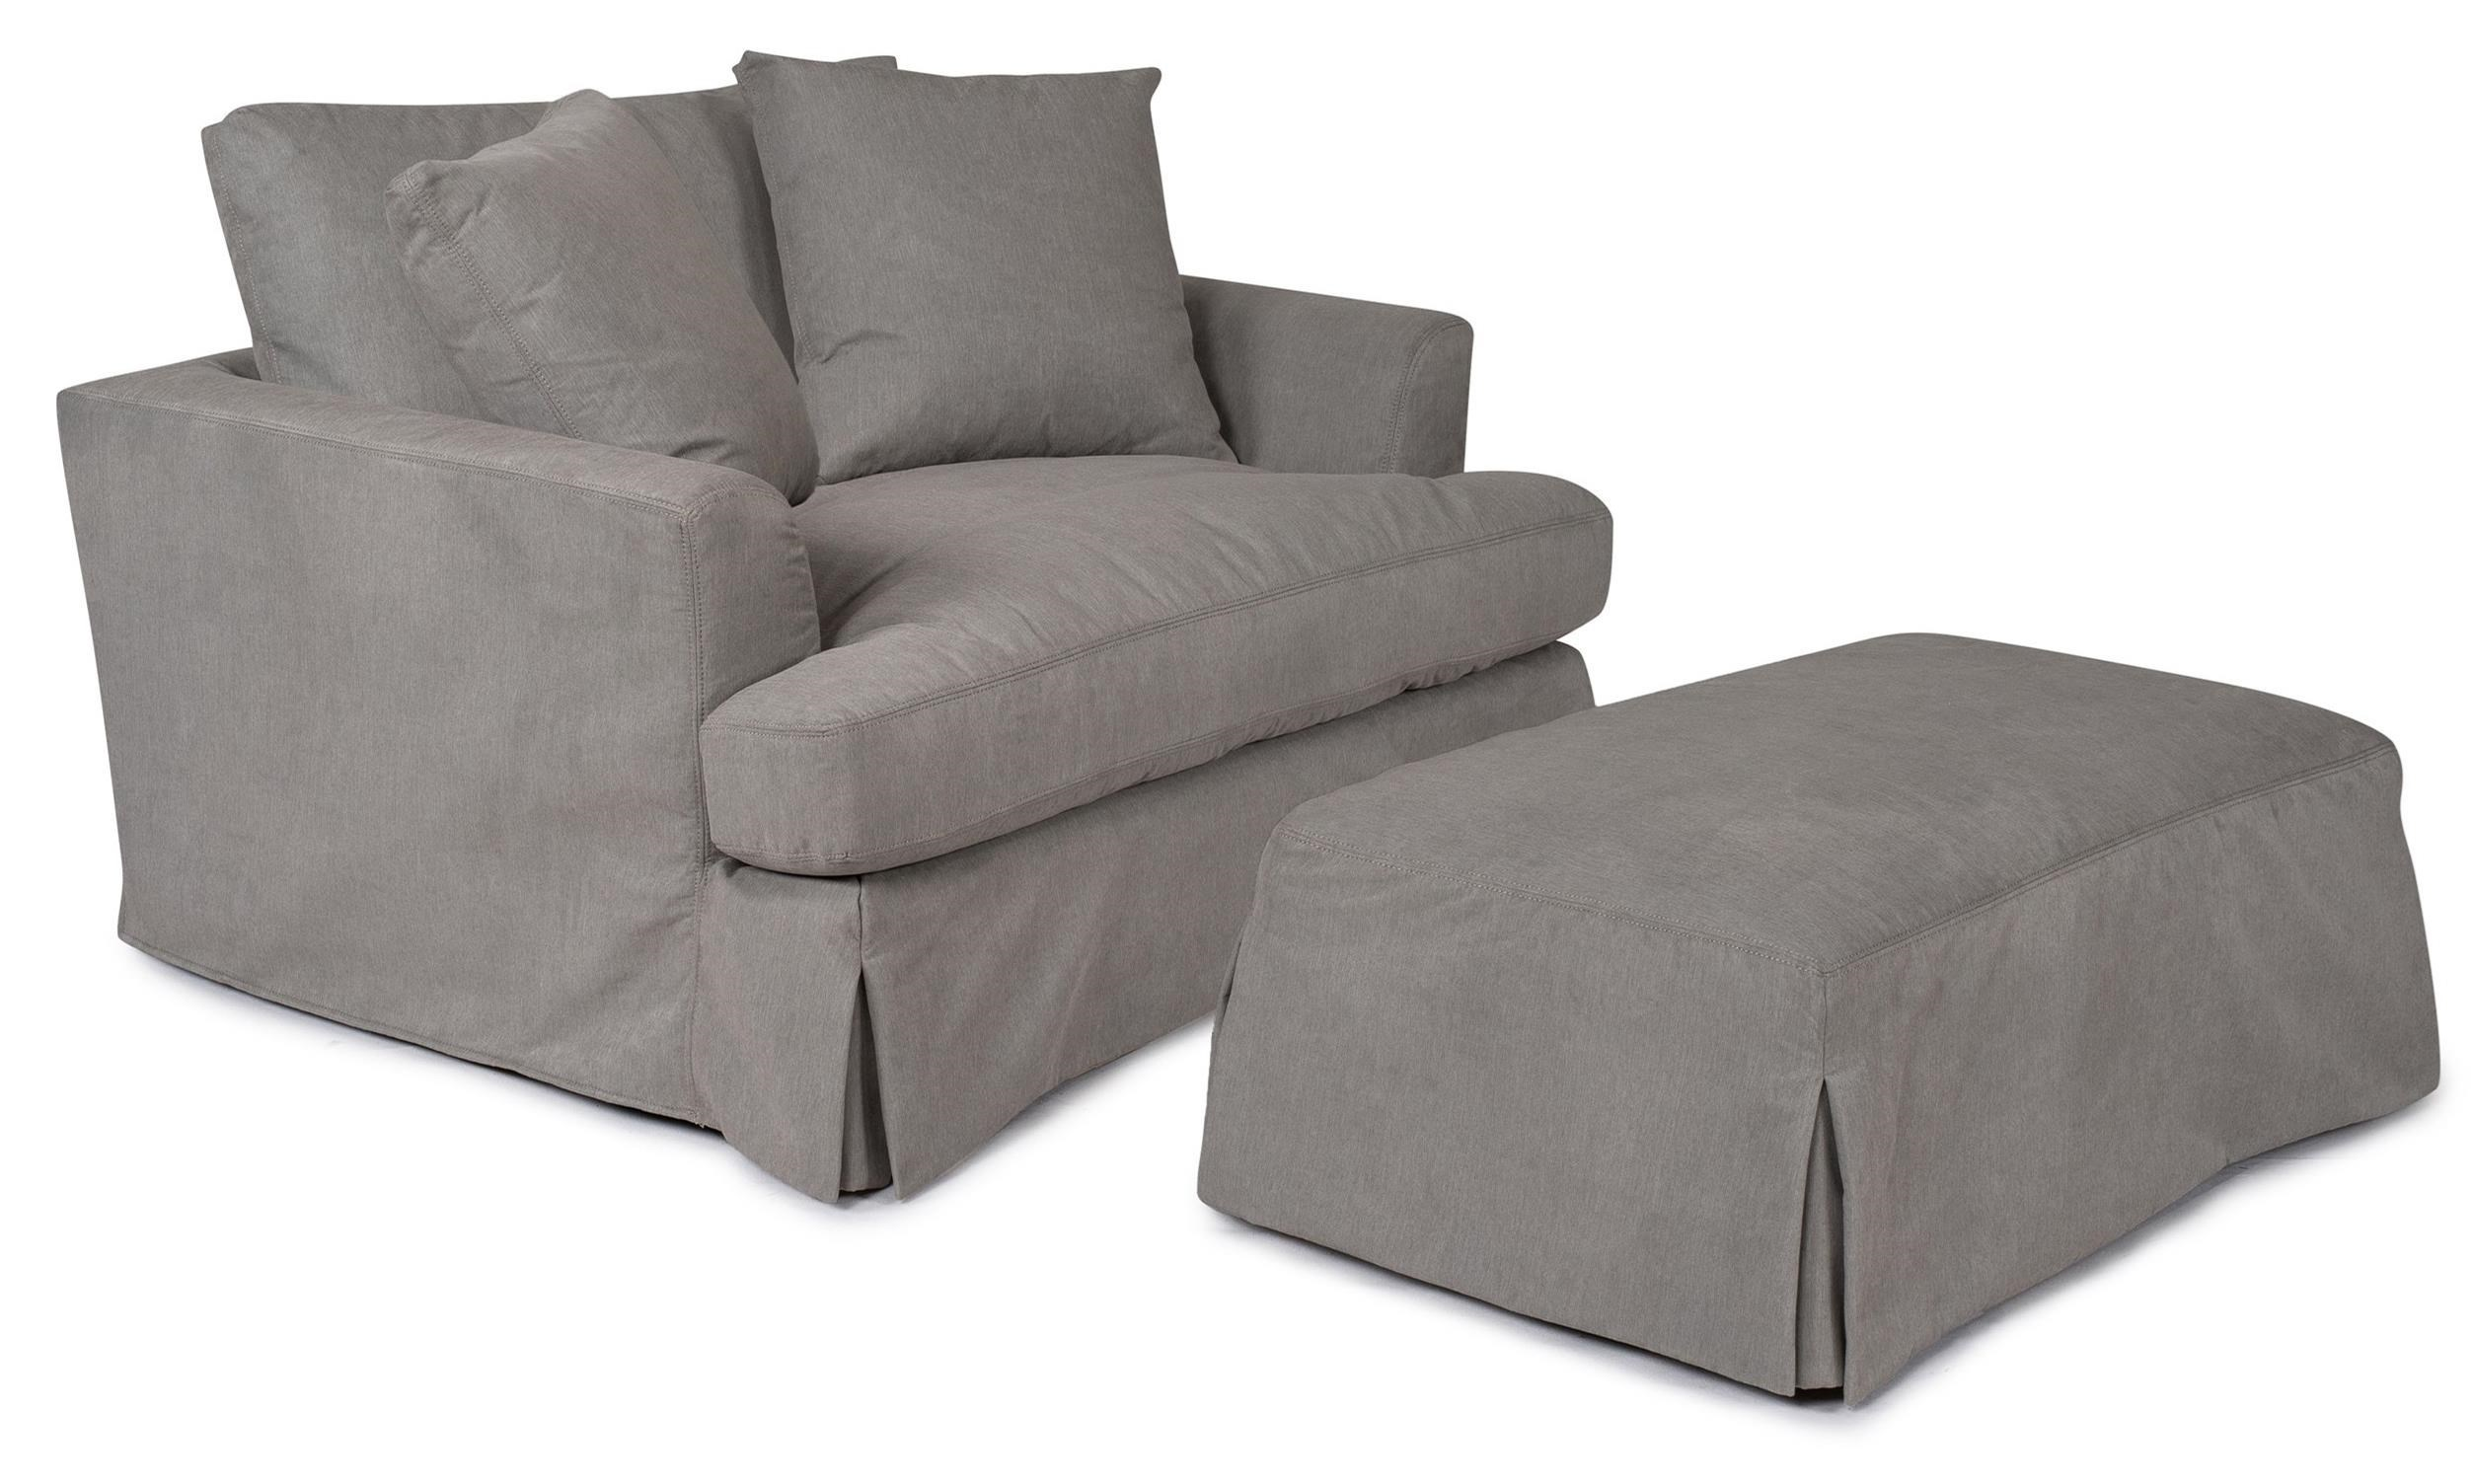 Amazing Slipcover Chair And A Half #22 - ... Synergy Home Furnishings 1300Chair And A Half